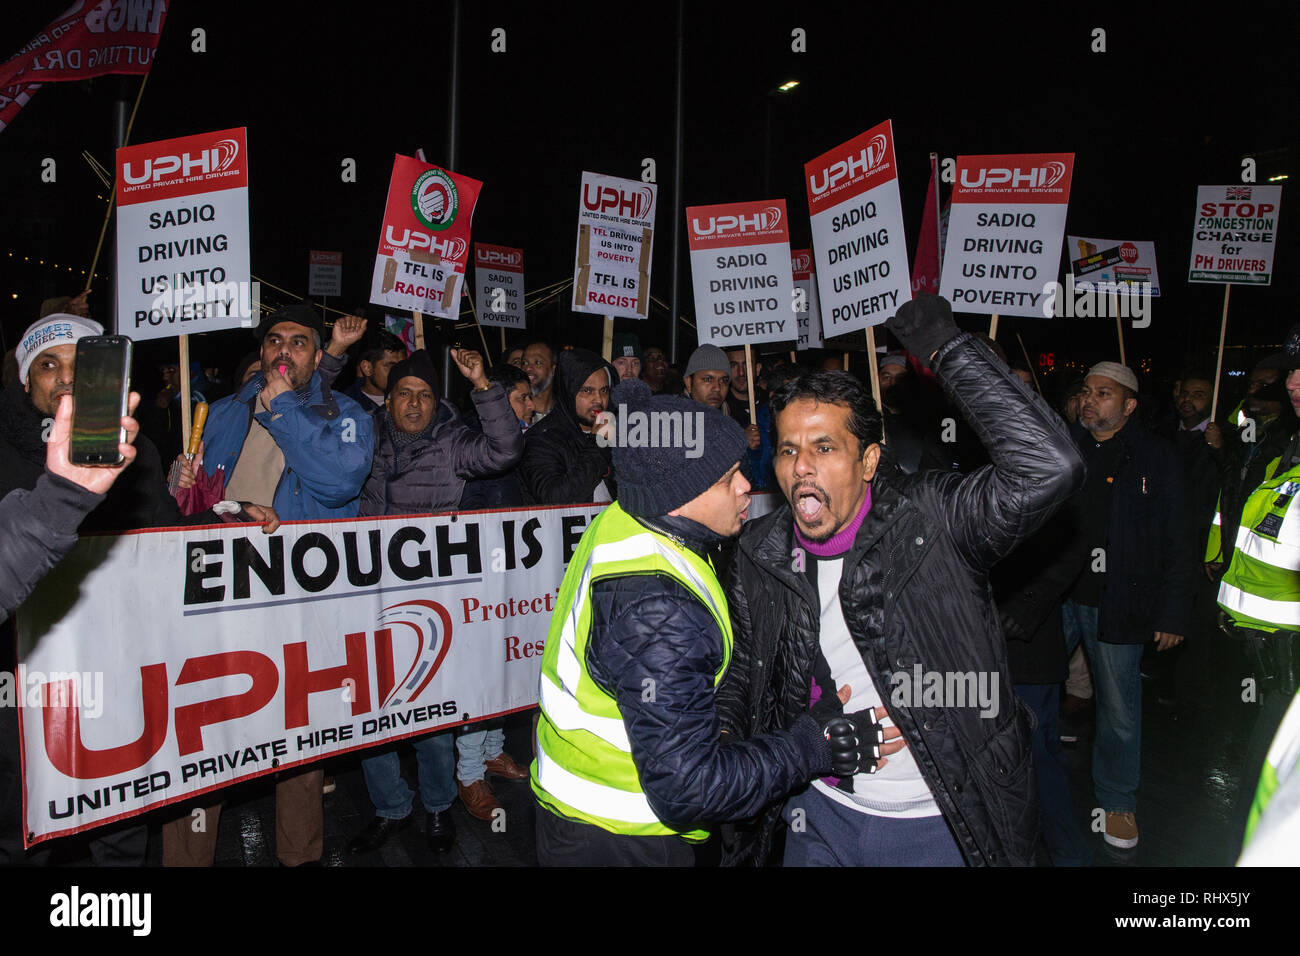 London, UK. 4th February, 2019. Hundreds of minicab drivers protest outside City Hall after having left their vehicles blocking London Bridge as part of a protest organised by the United Private Hire Drivers (UPHD) branch of the Independent Workers Union of Great Britain's (IWGB)  following the introduction in December of congestion charges for minicabs. Credit: Mark Kerrison/Alamy Live News - Stock Image